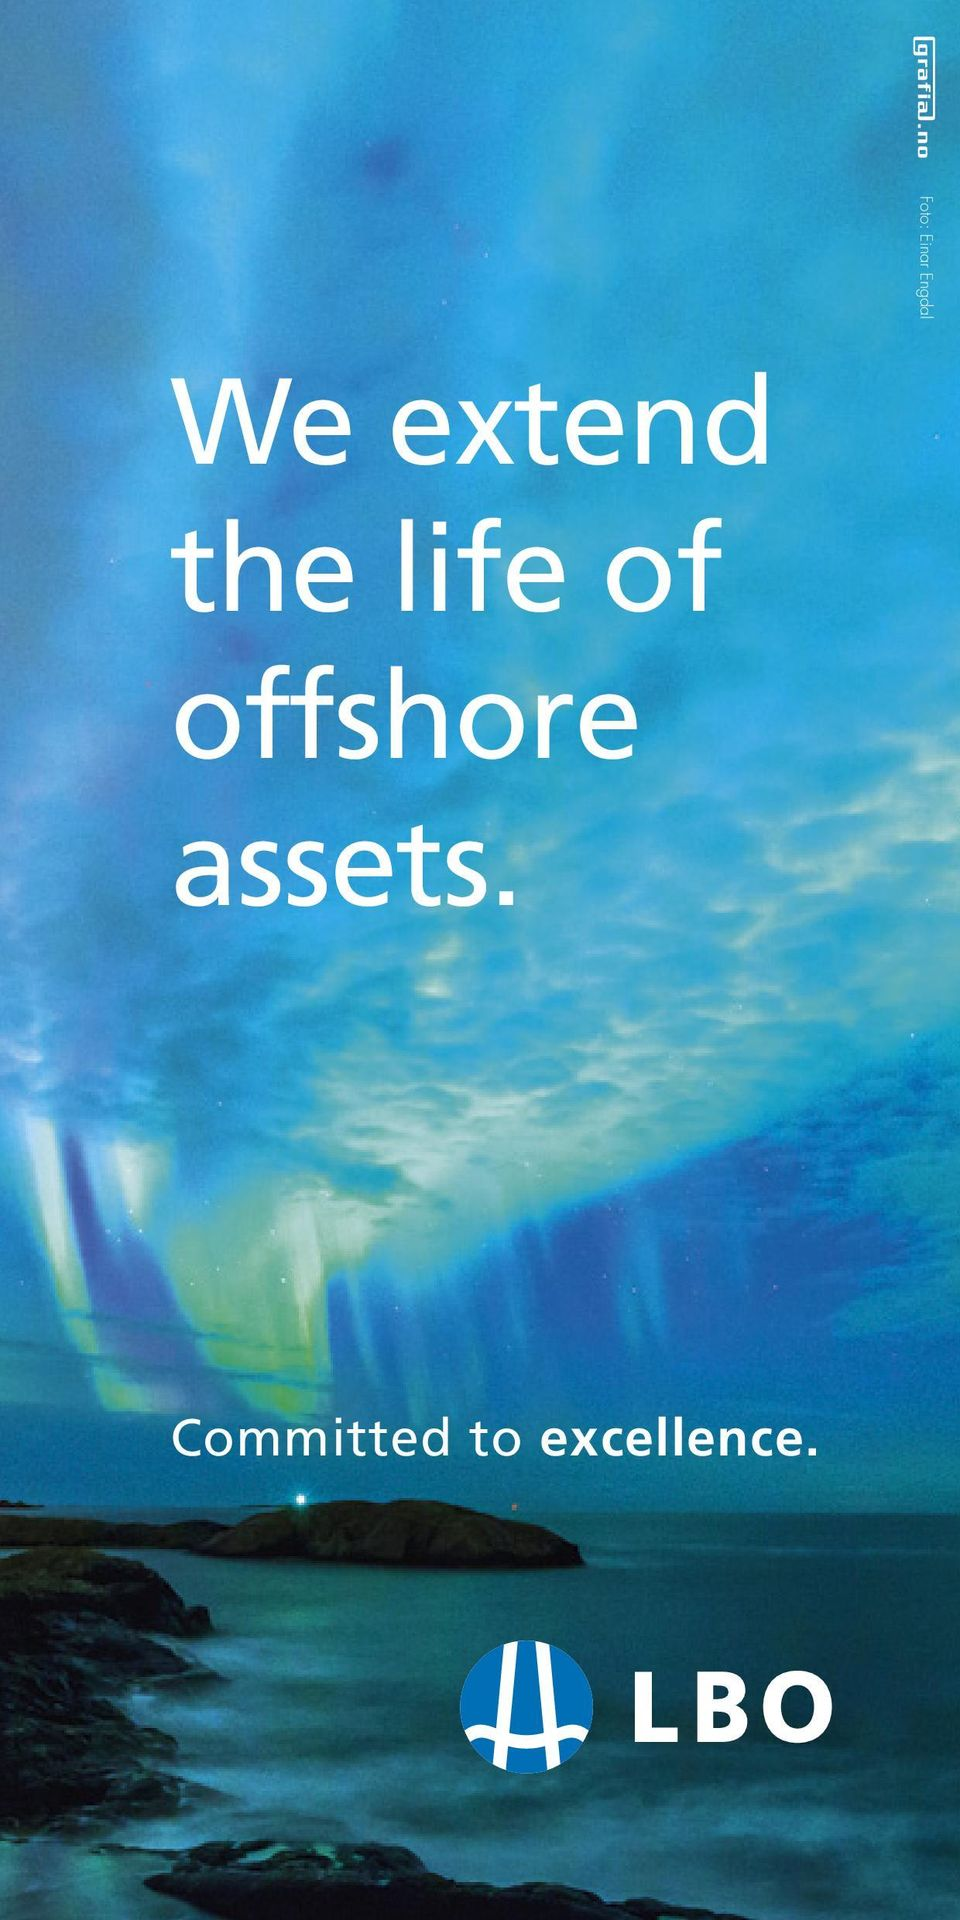 of offshore assets.